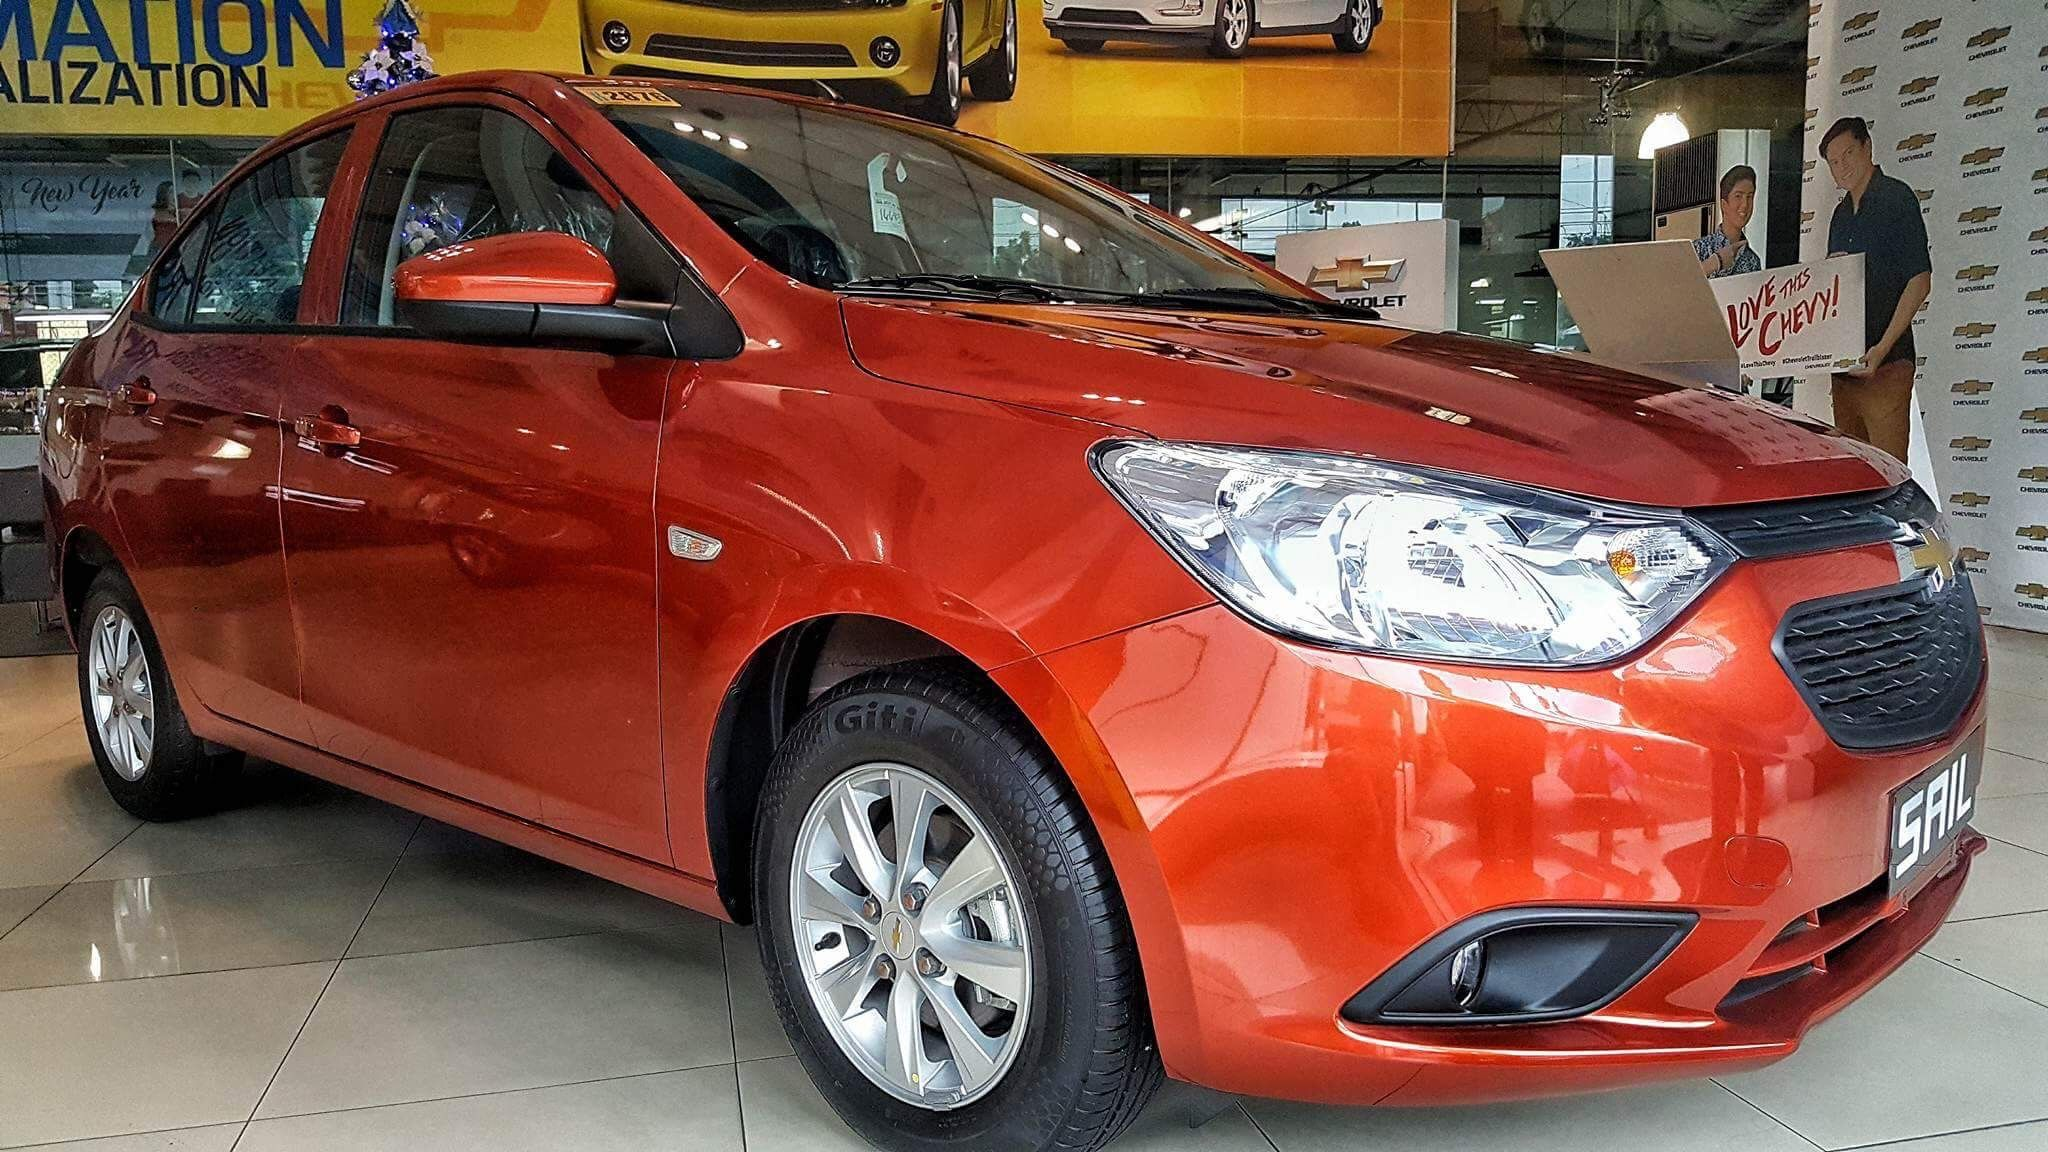 Grab This Promo Offer For A Brand New 2017 Chevrolet Sail Lt At Auto Trade Philippines Call 09173188008 Or Click Image F Chevrolet Sail Cars For Sale Chevrolet